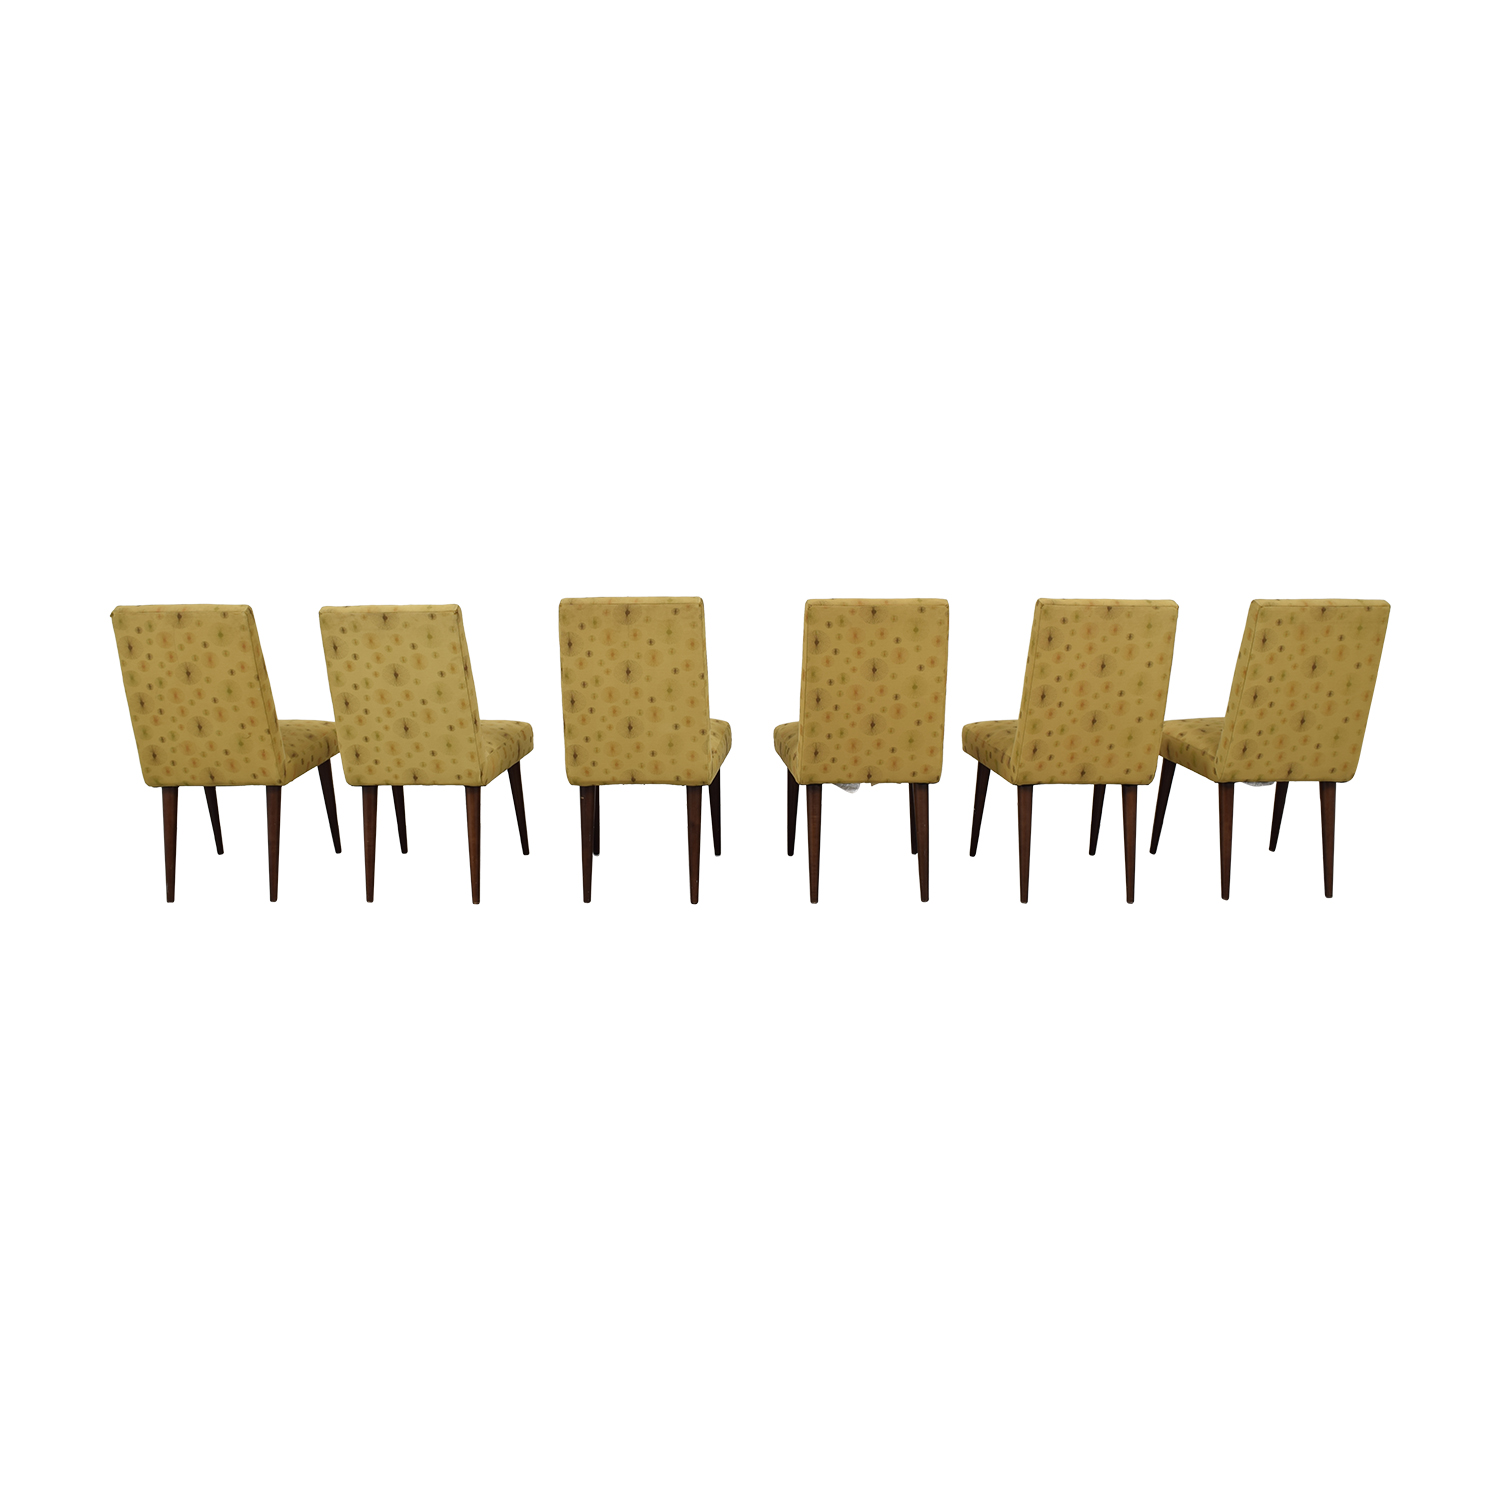 shop Room & Board Room & Board Multi-Colored Dining Chairs online